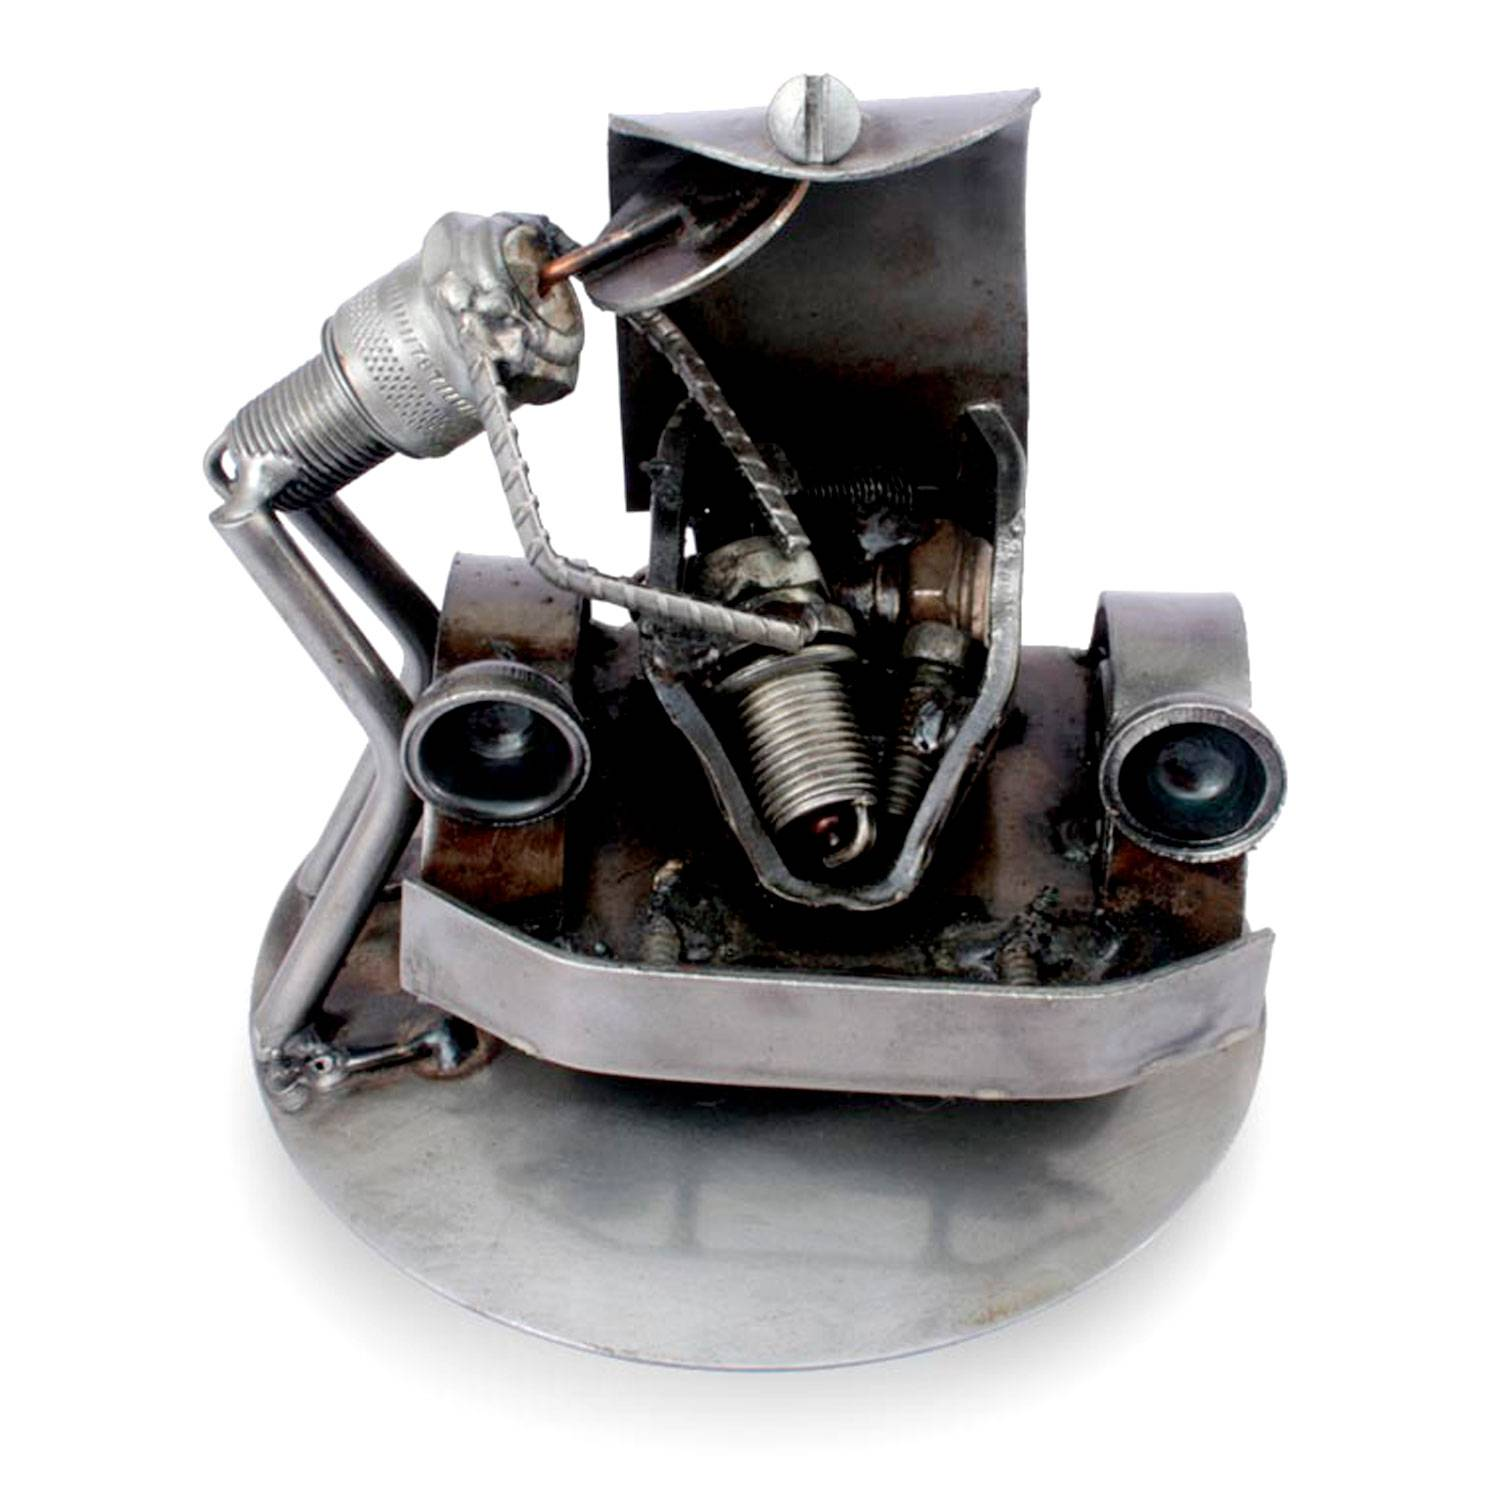 Unicef Uk Market Recycled Auto Parts Sculpture Metal Art